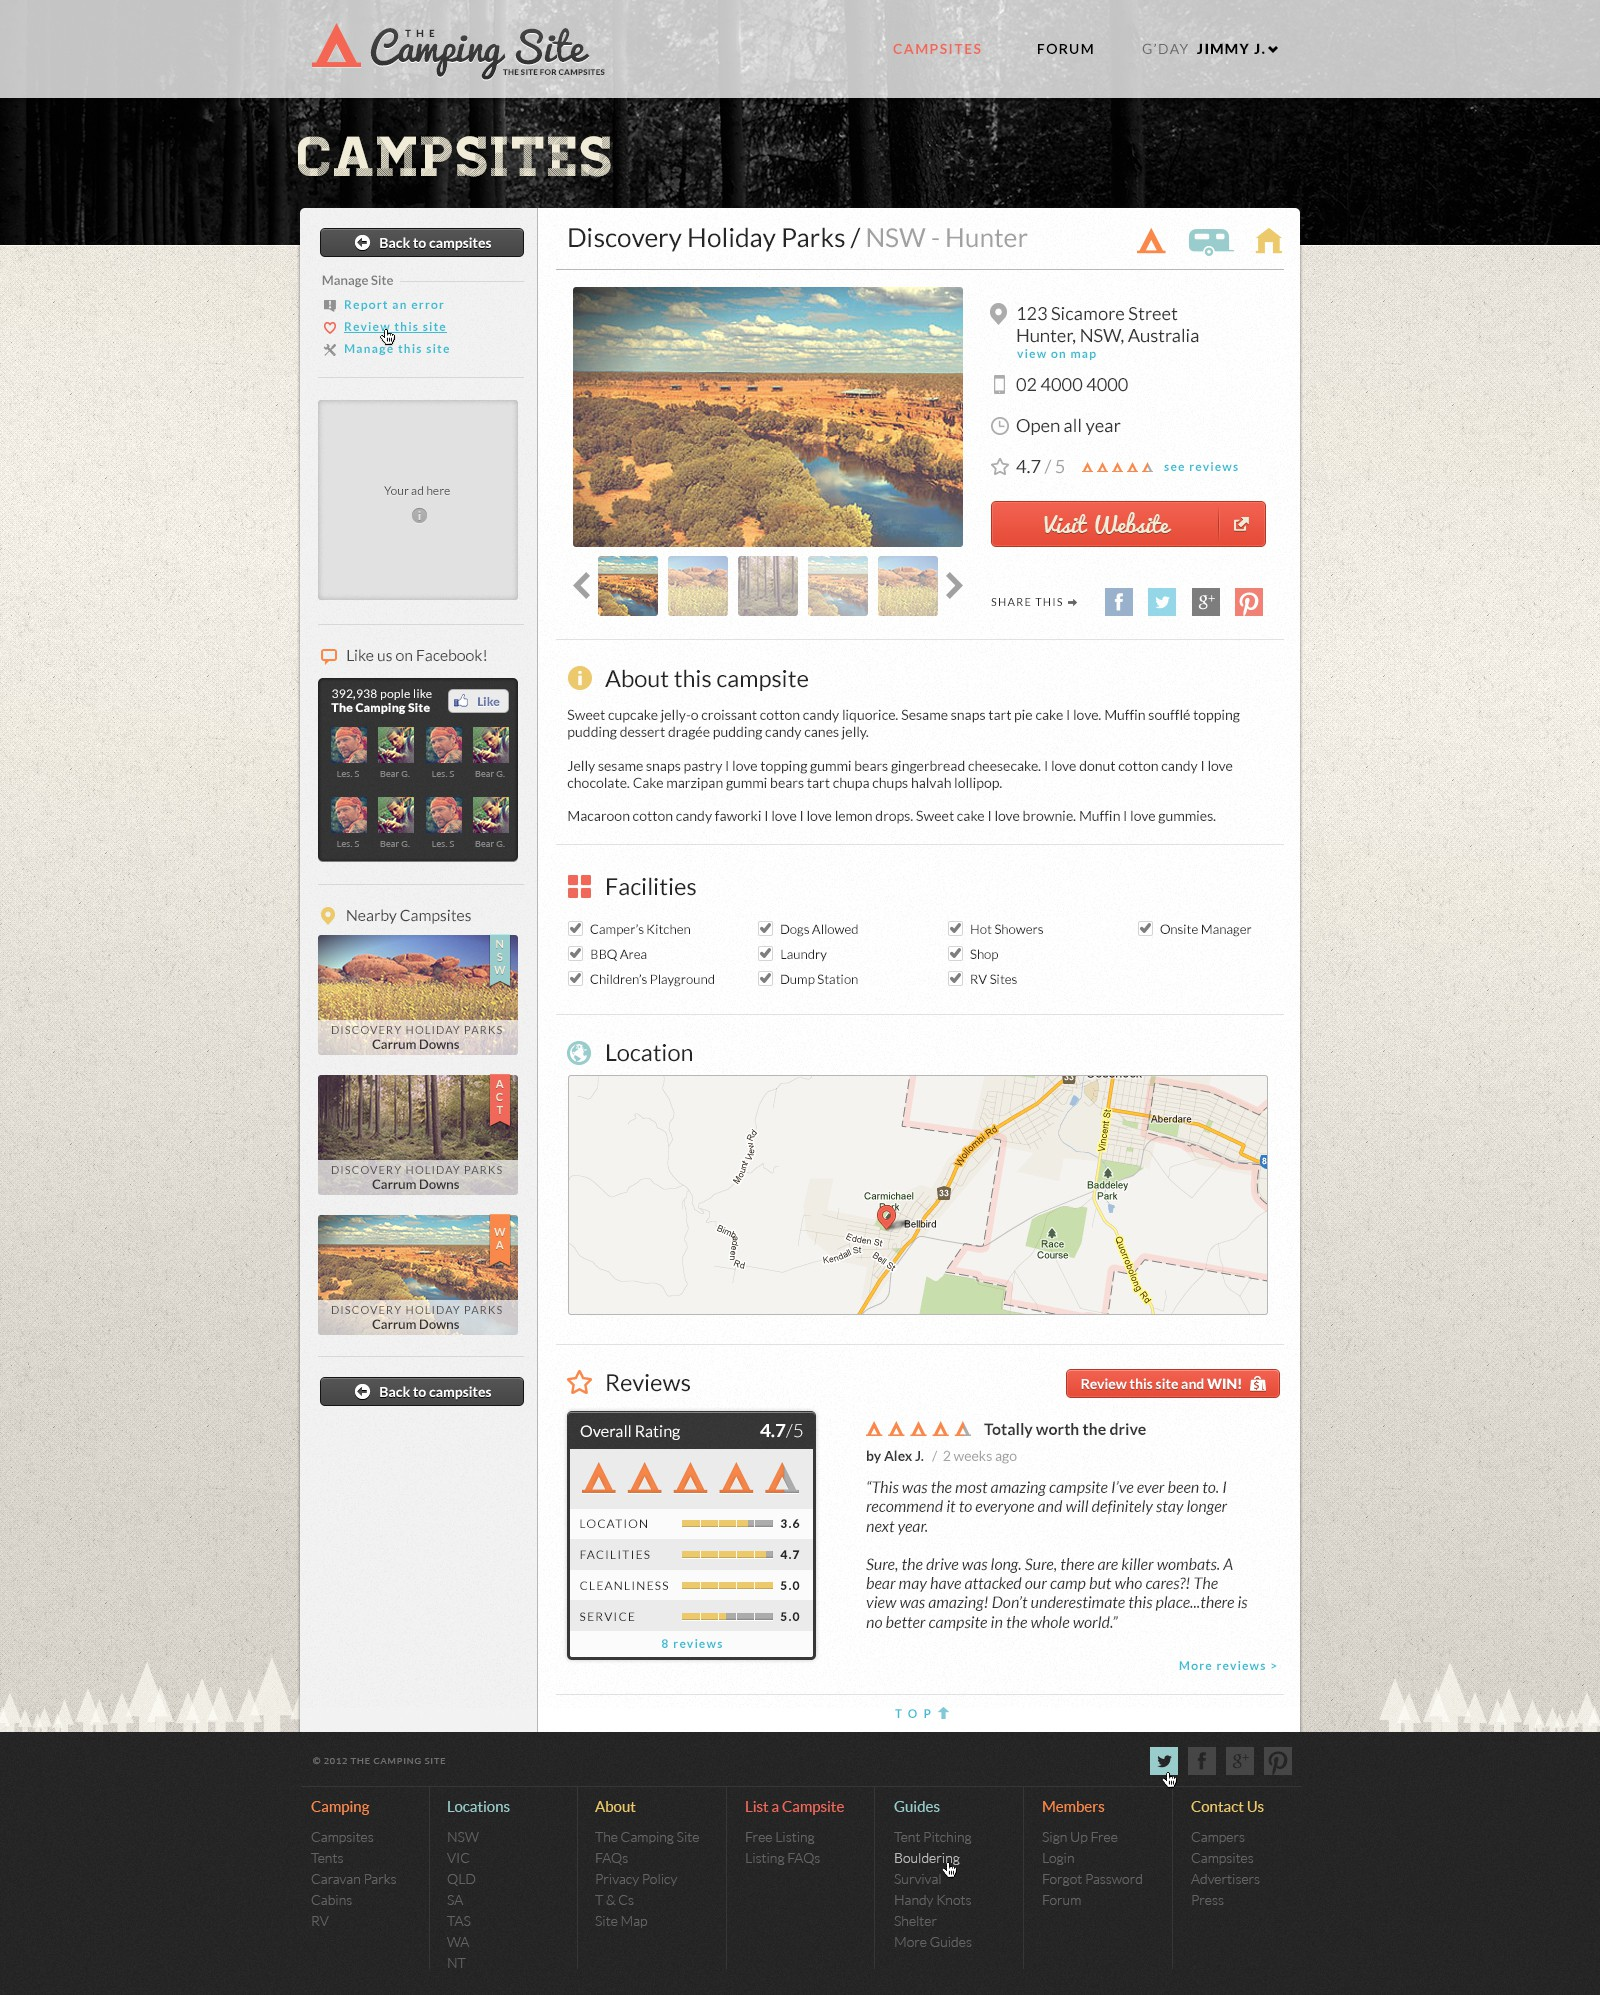 Creative Design Needed For New CampingWebsite